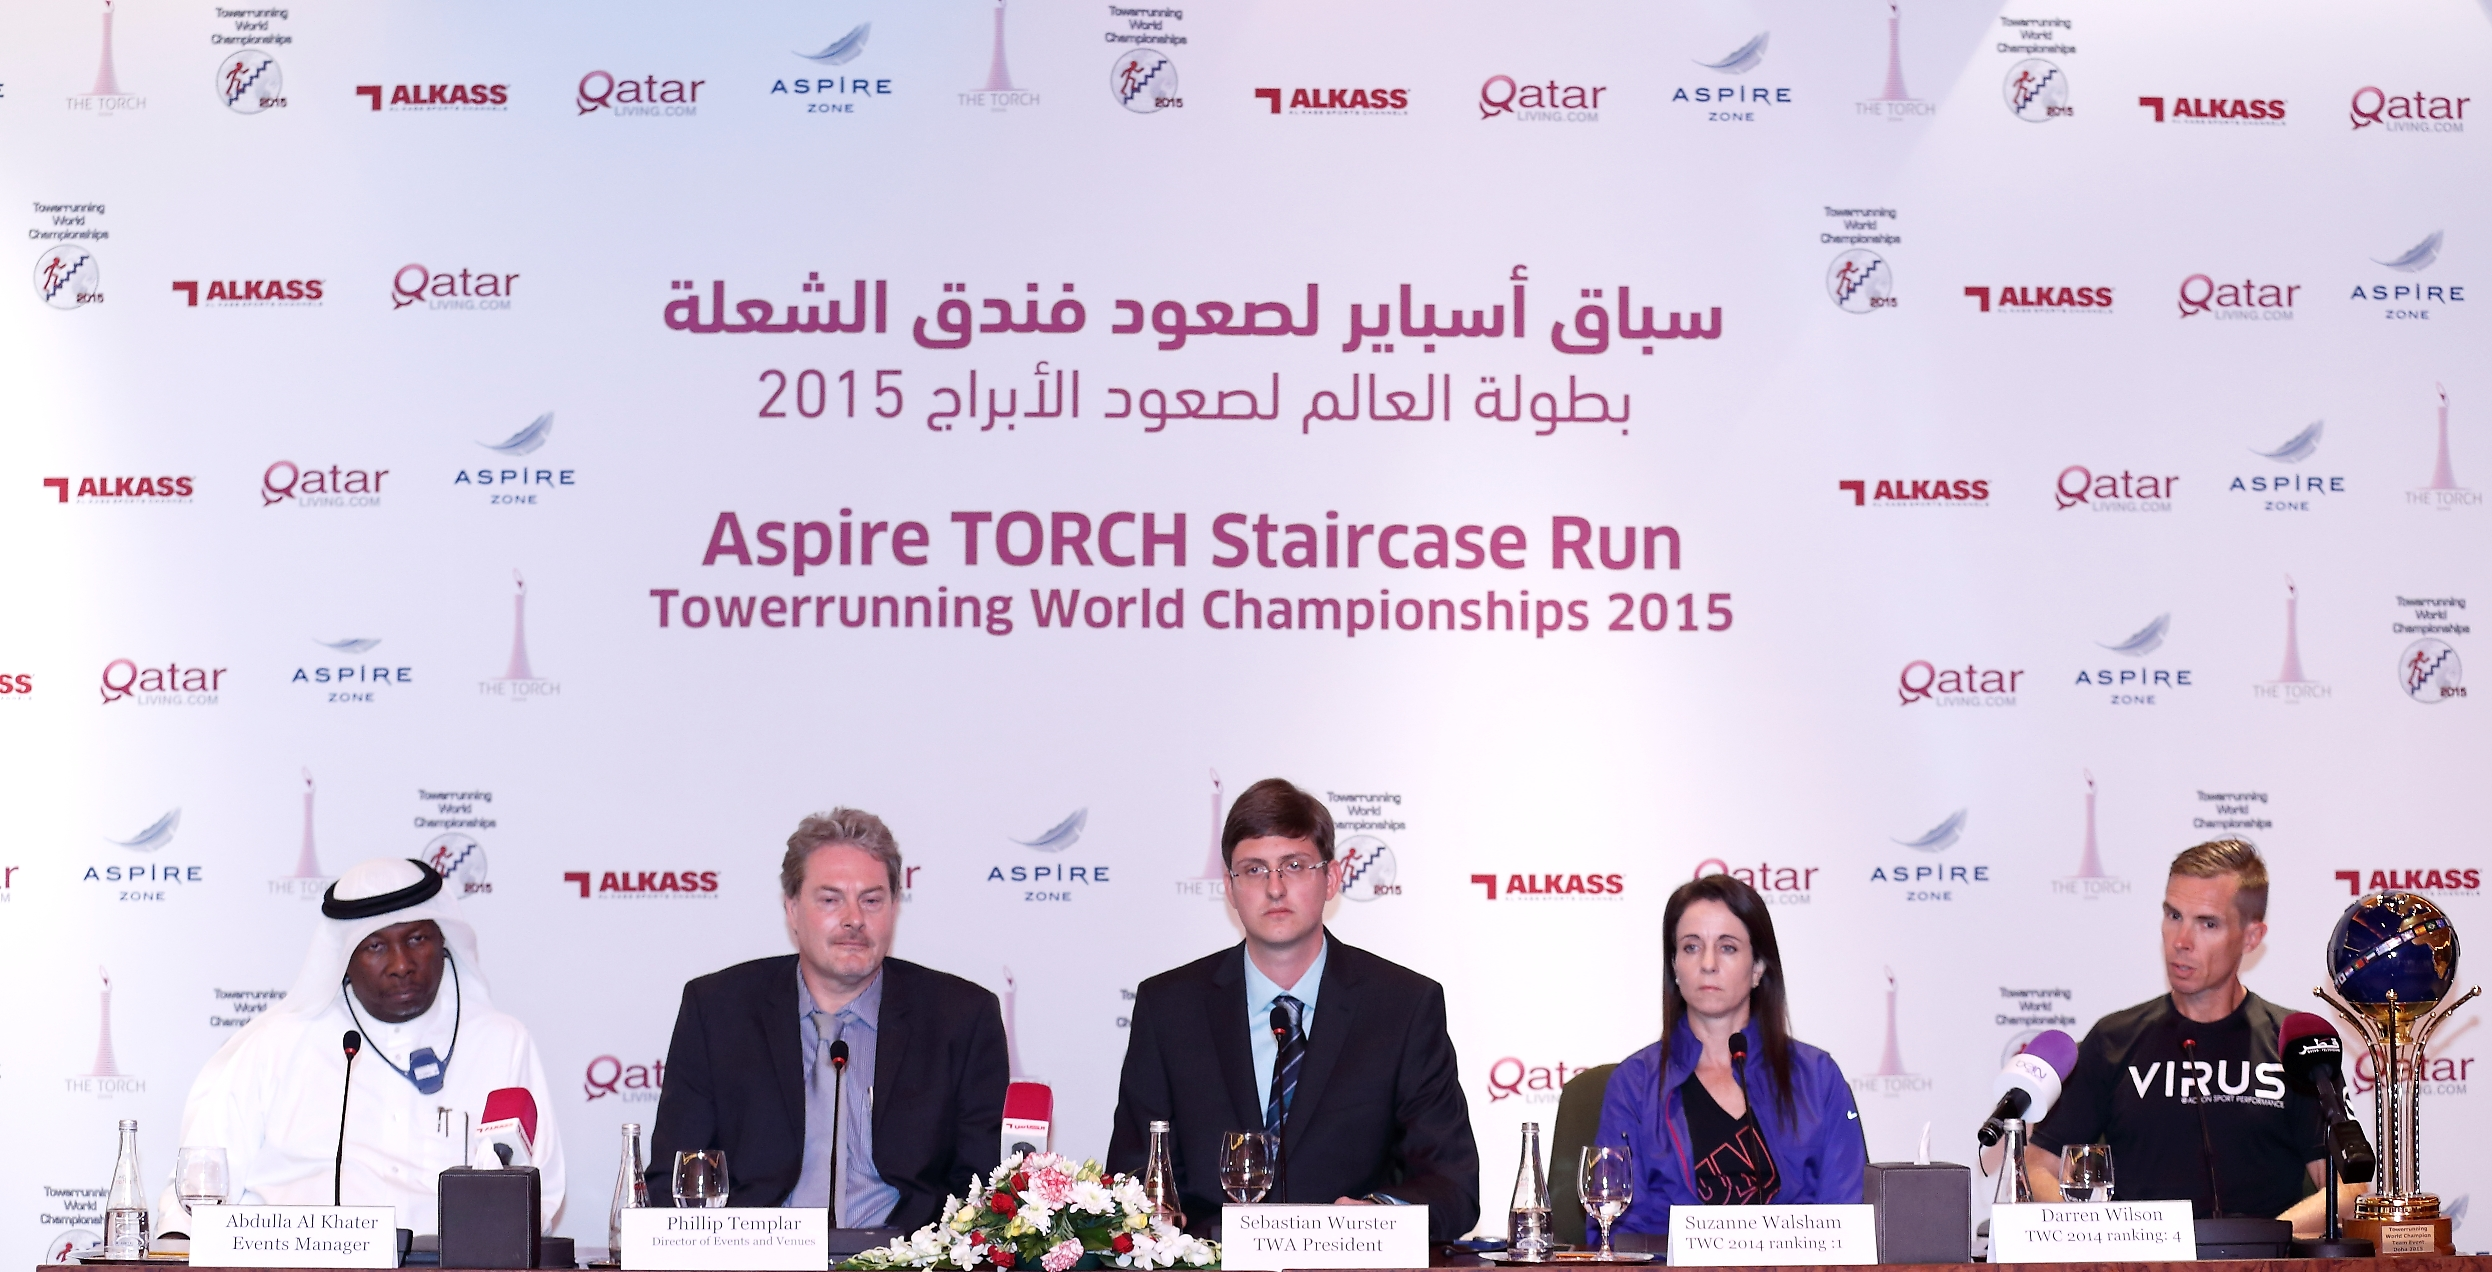 Aspire Zone Honoured to be Hosting the  Aspire Torch Staircase Run and the  Towerruning World Championships 2015